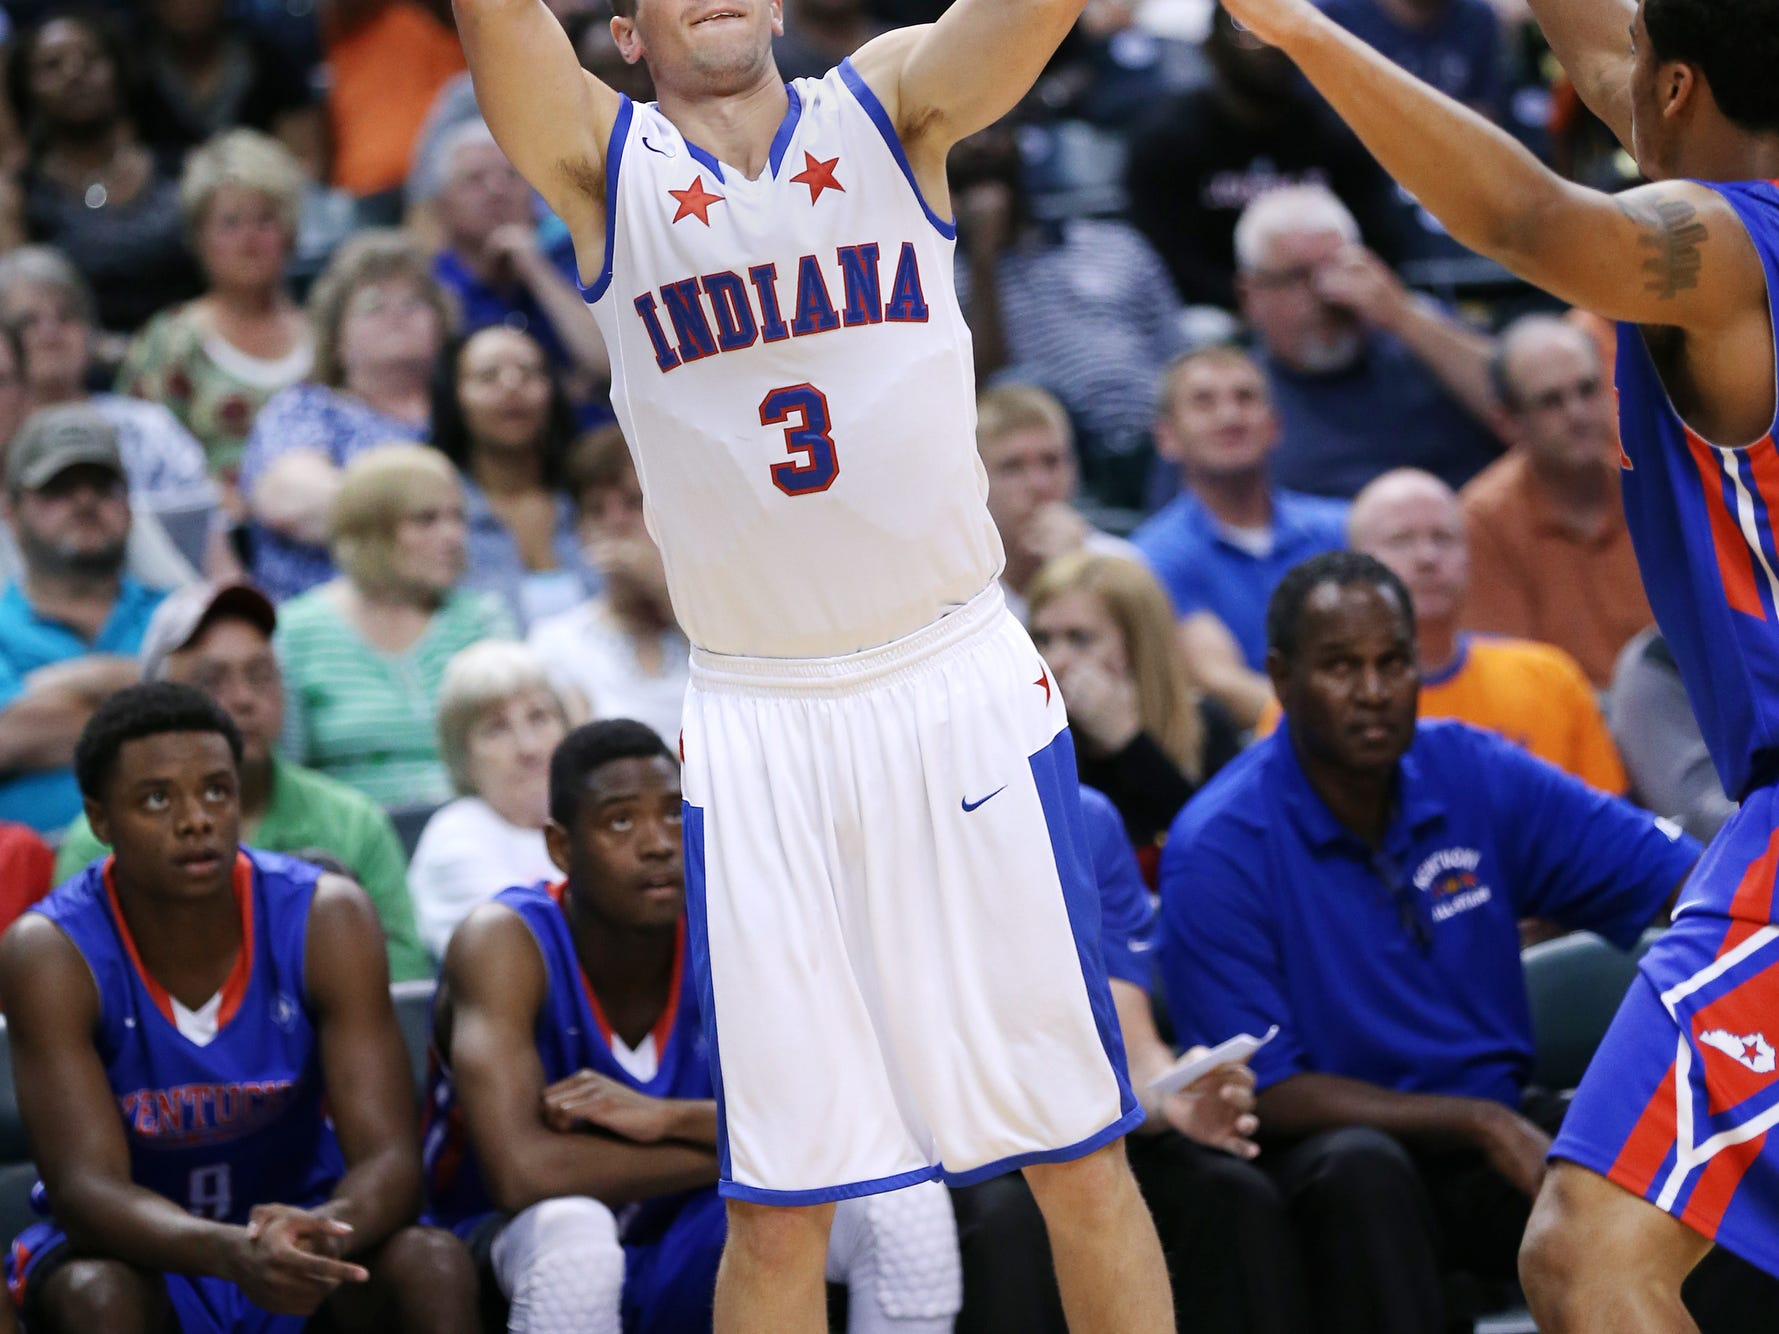 Wapahani graduate Grant Evans fires a shot in an Indiana All-Stars game against Kentucky in 2014. Evans has elected to transfer from Wright State after his freshman season.